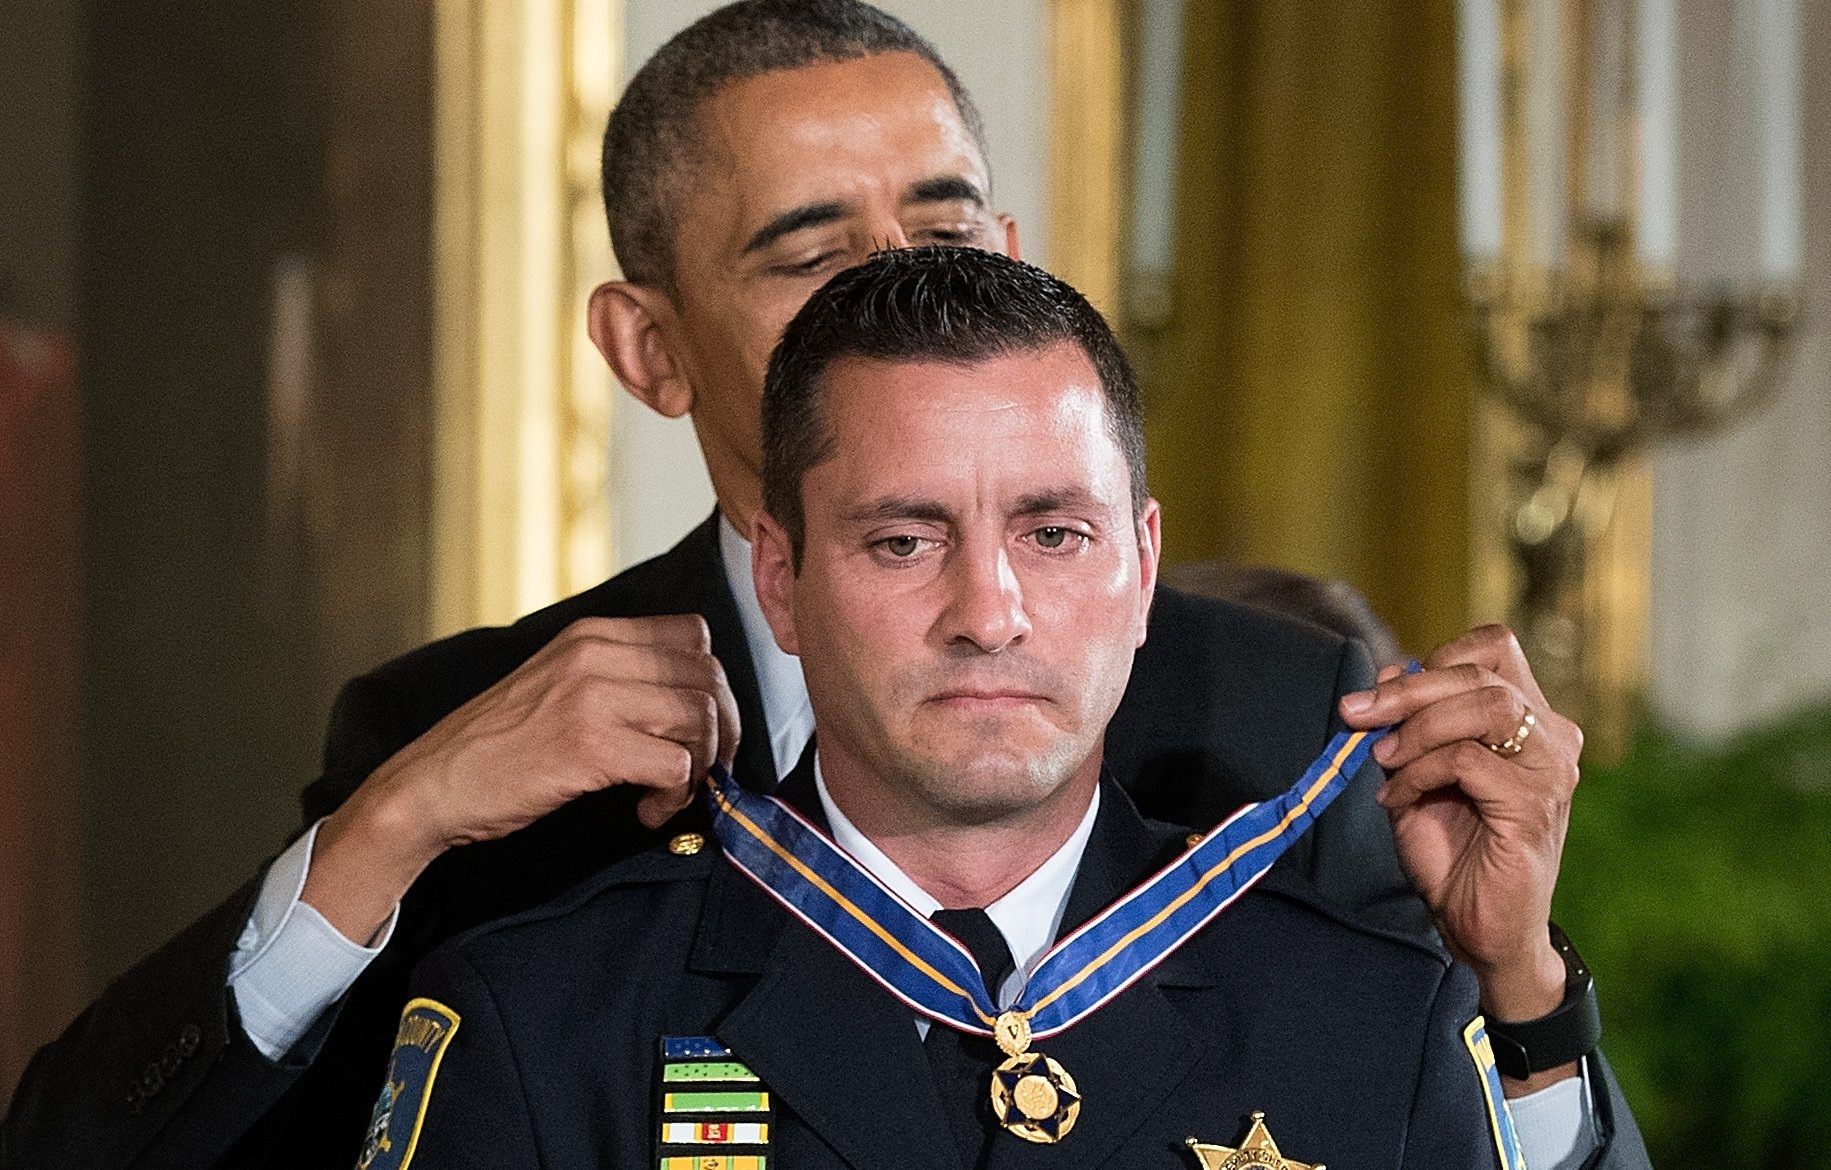 President Barack Obama presents Niagra County Sheriff's Deputy Joseph Tortorella with the Medal of Valor during a ceremony in the East Room of the White House on May 16, 2016, in Washington, D.C. (Getty Images)